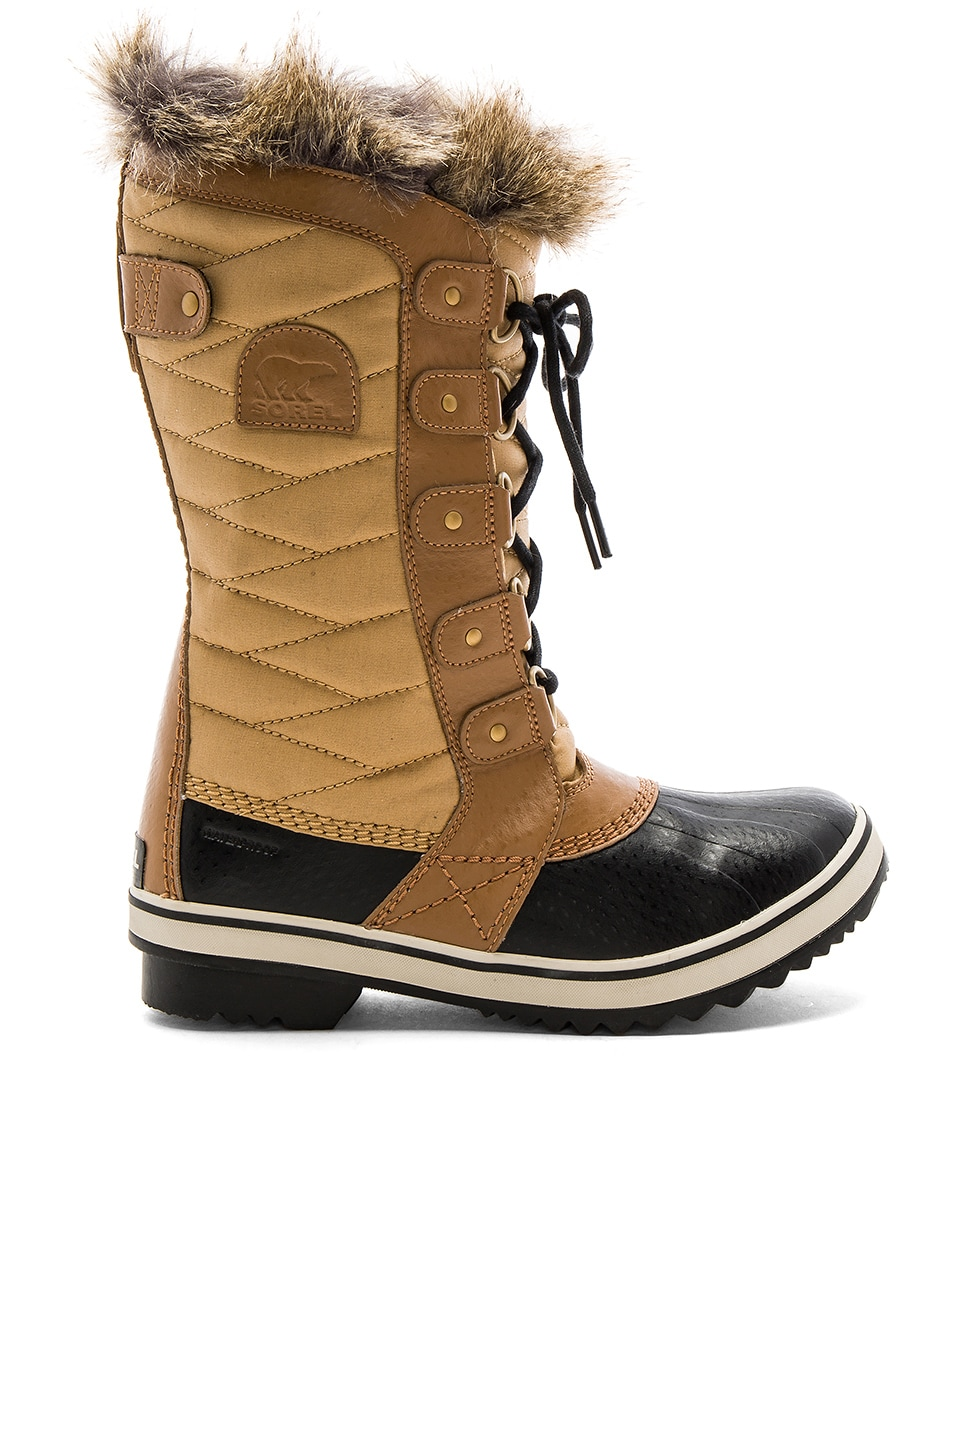 Tofino II Boot with Faux Fur by Sorel